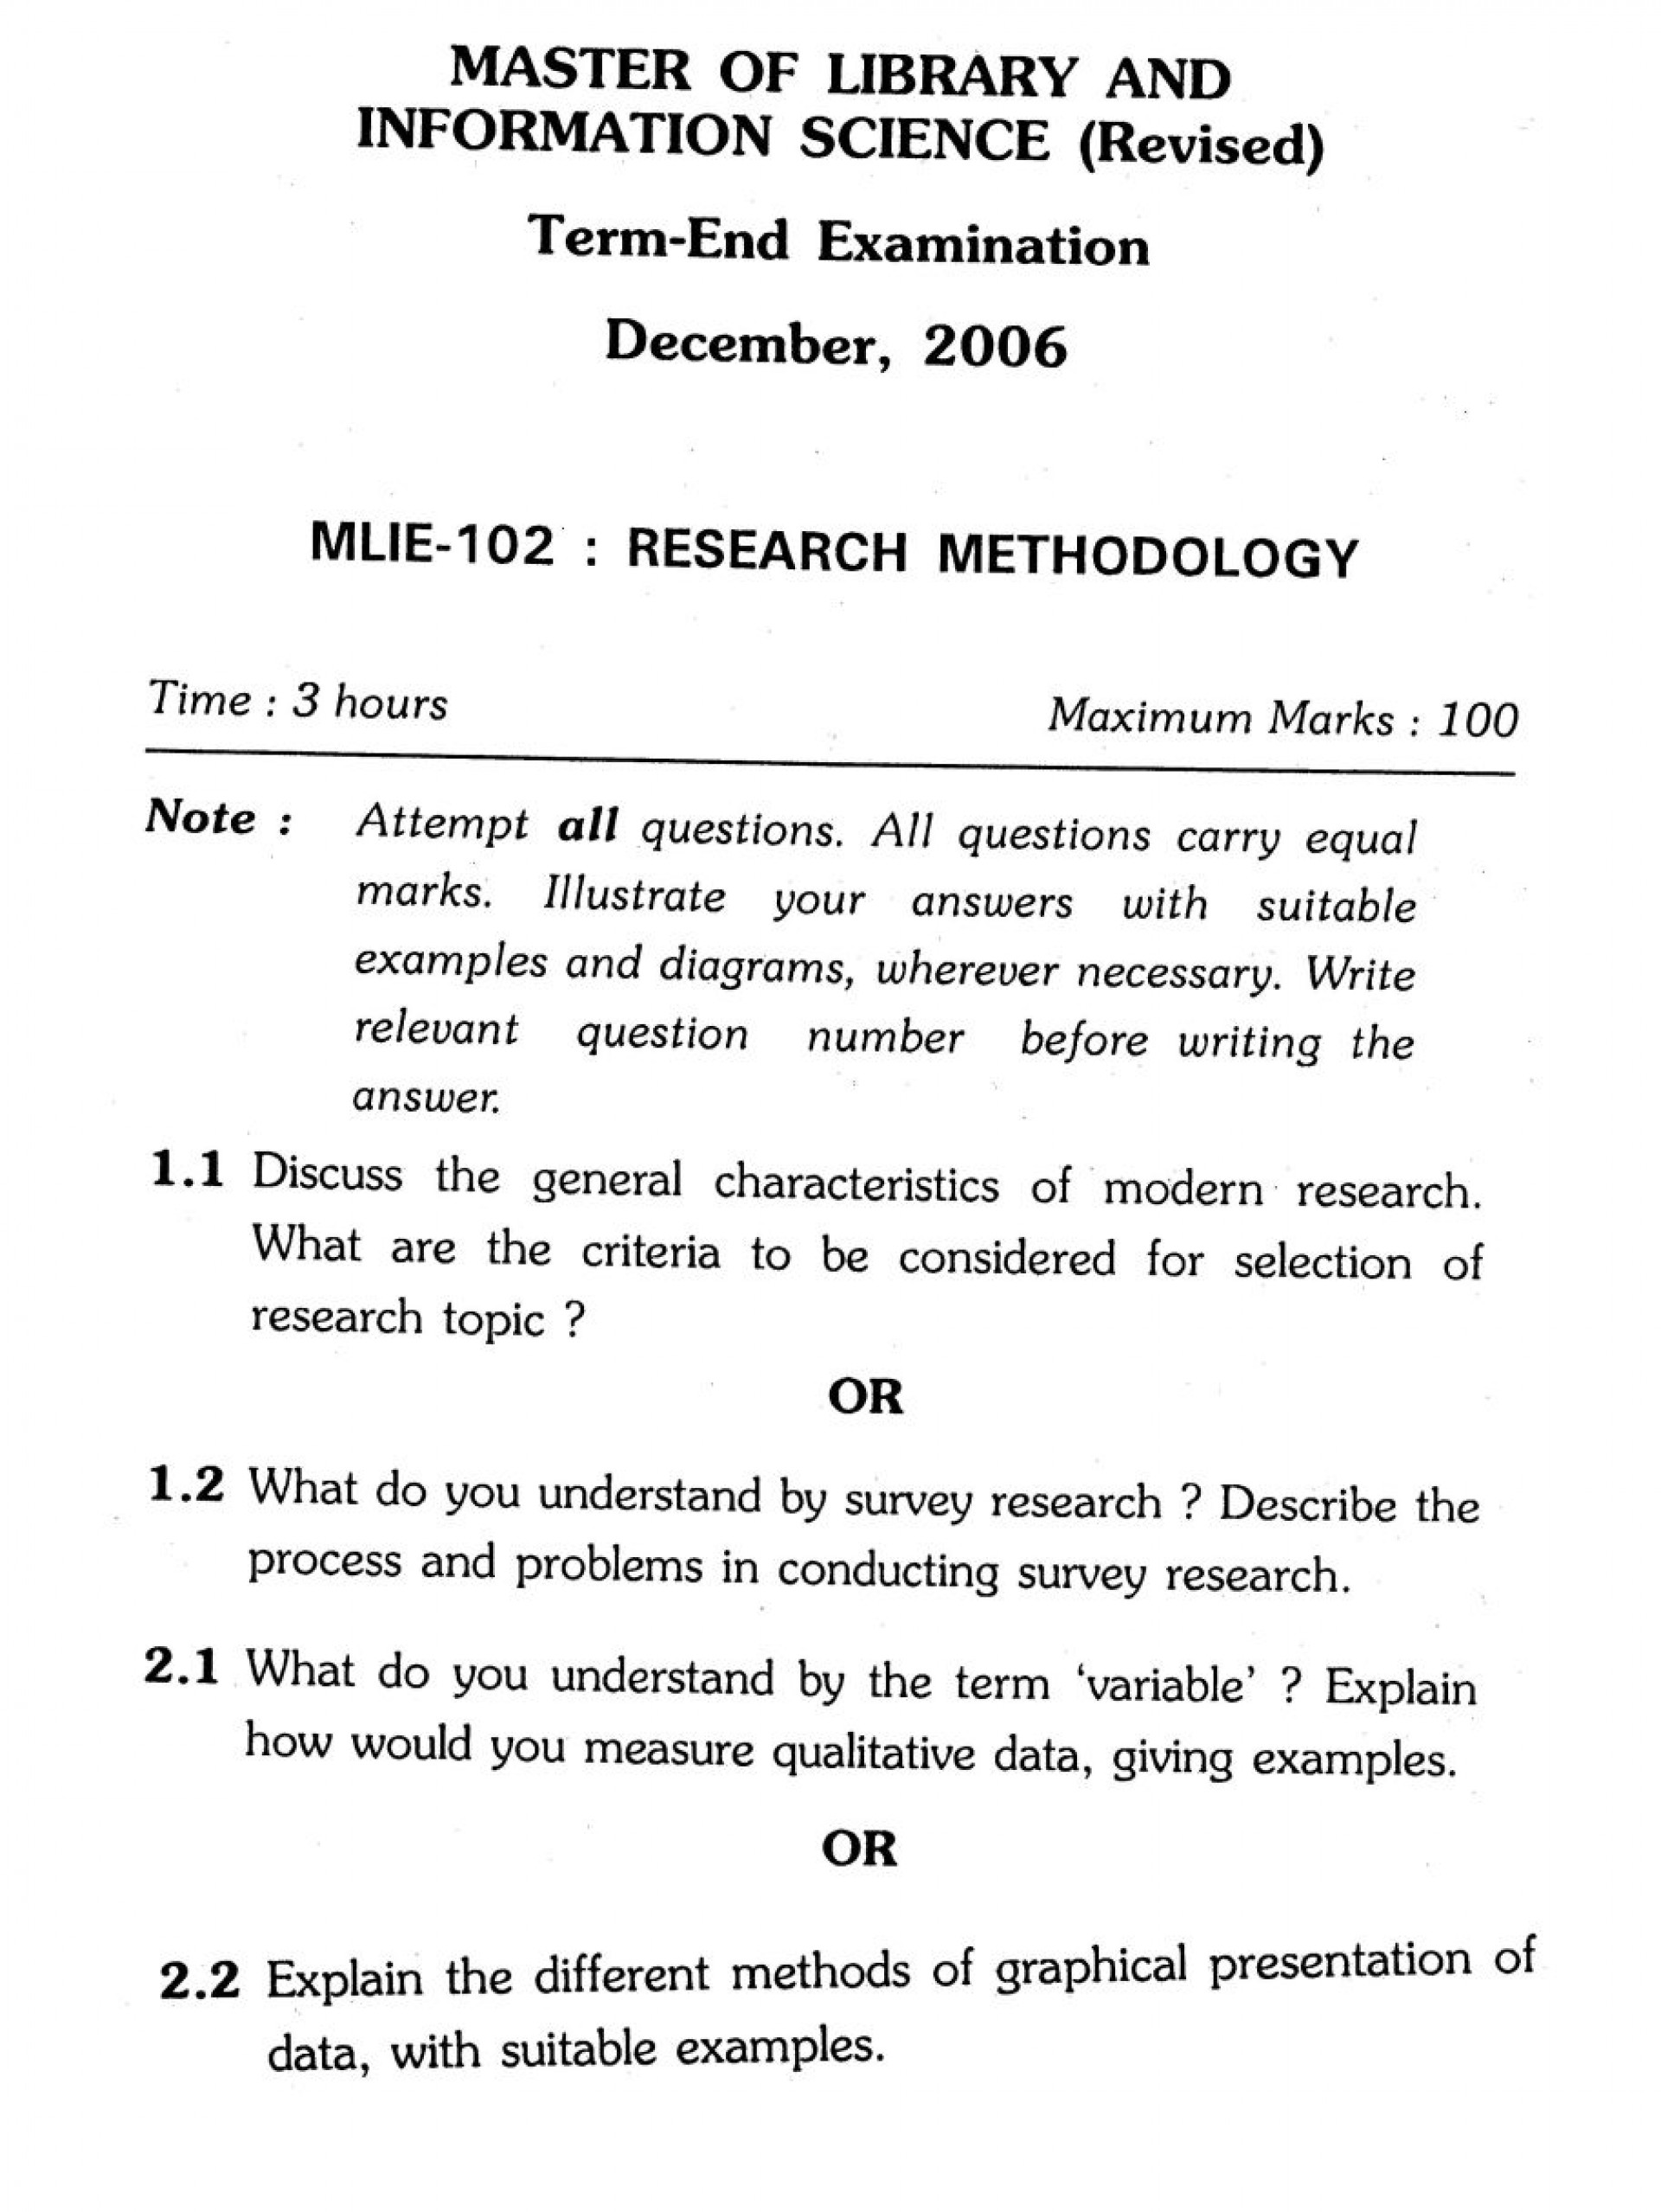 016 Ignou Master Of Library And Information Science Research Methodology Previous Years Questions Sample For Impressive Paper Writing Pdf 1920